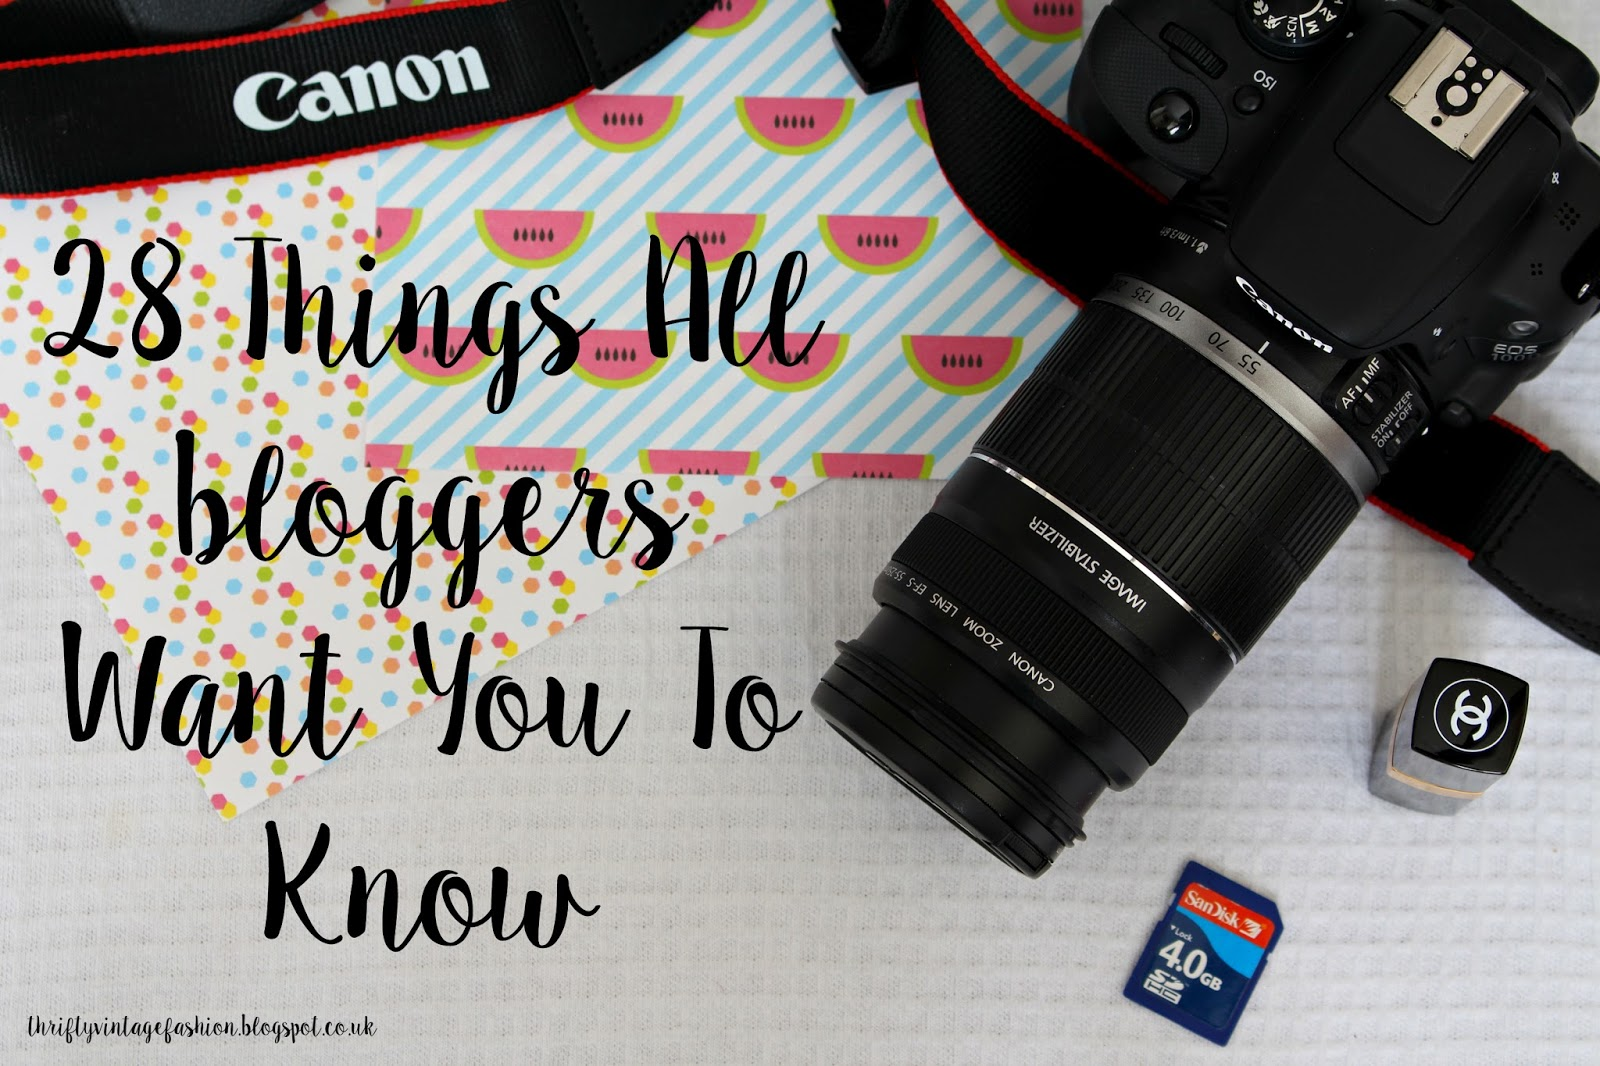 28 Things All bloggers Want You To Know UK Lifestyle advice tips